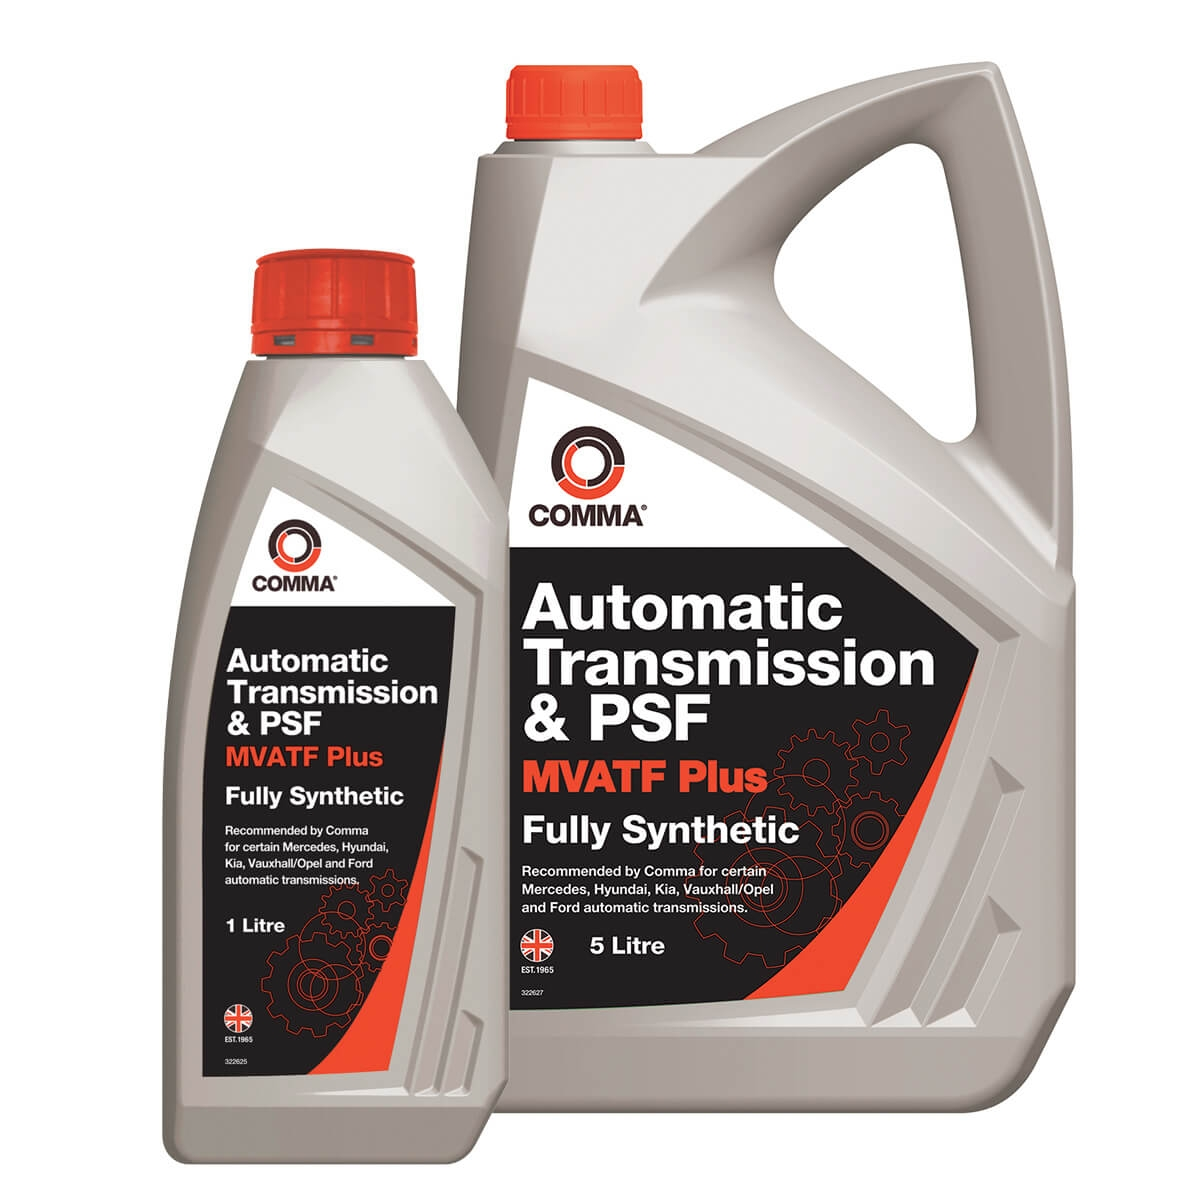 AUDI S6 Automatic Transmission Oil